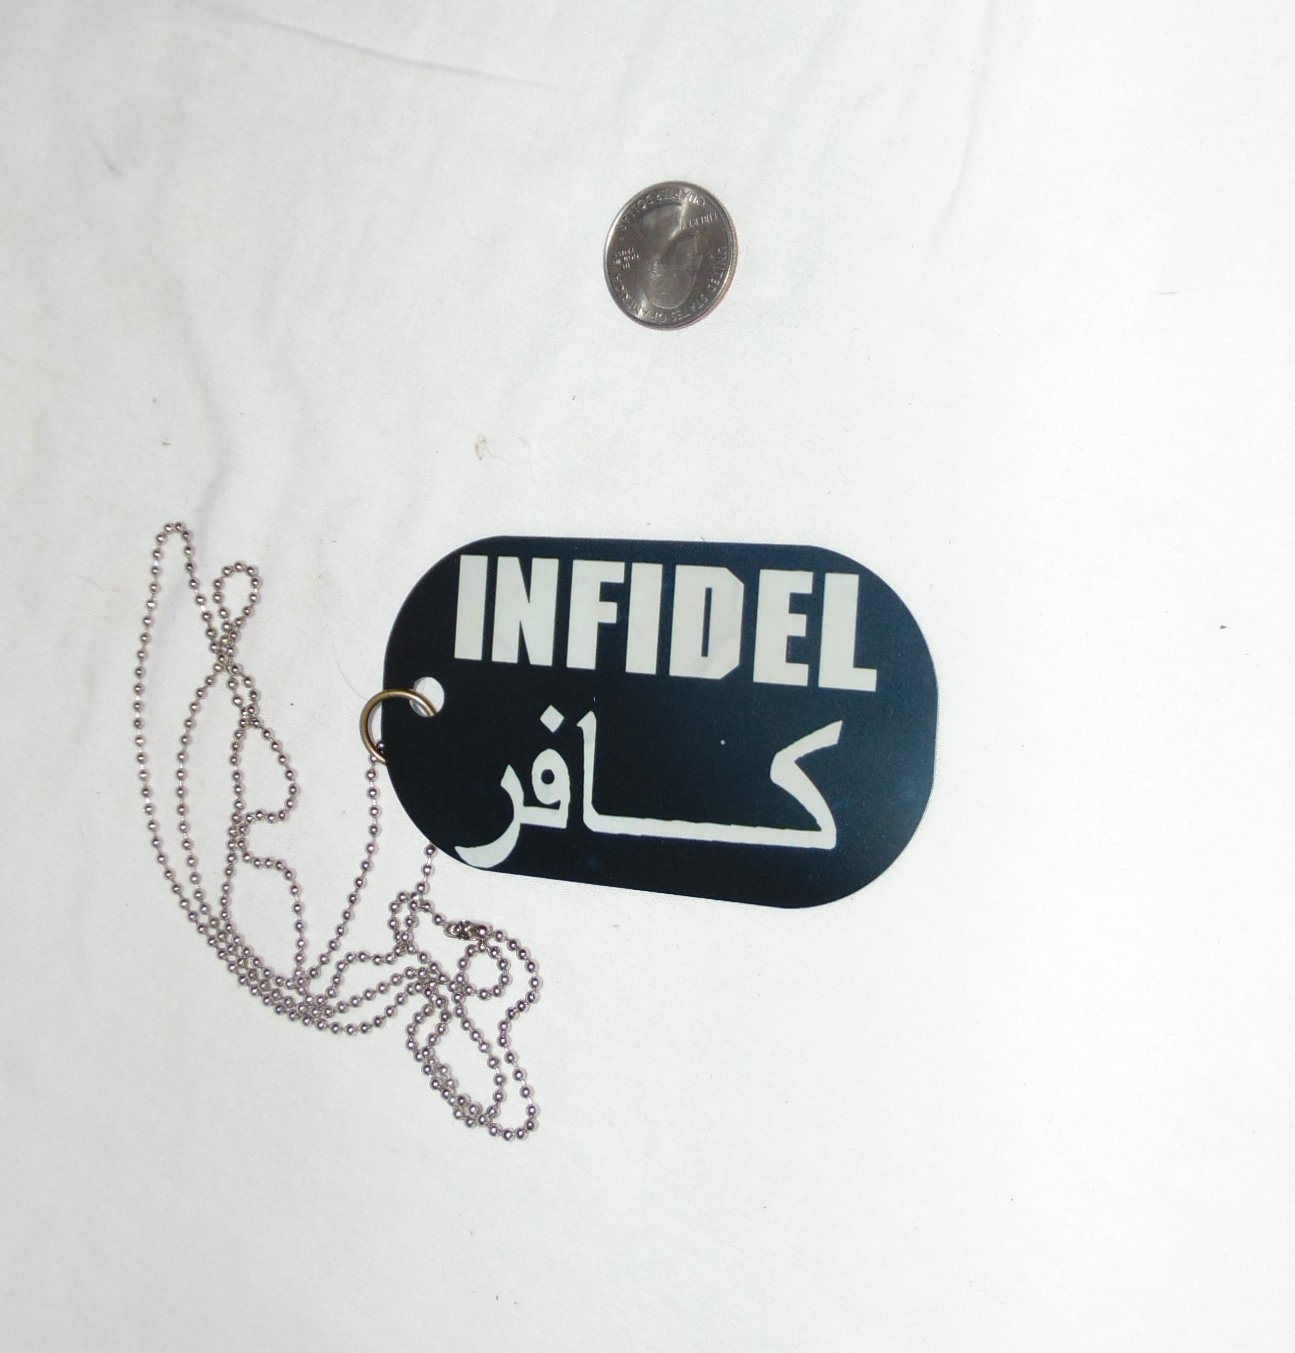 """INFIDEL oversized dog tag necklace rear view mirror decoration 4 x 2.25"""""""